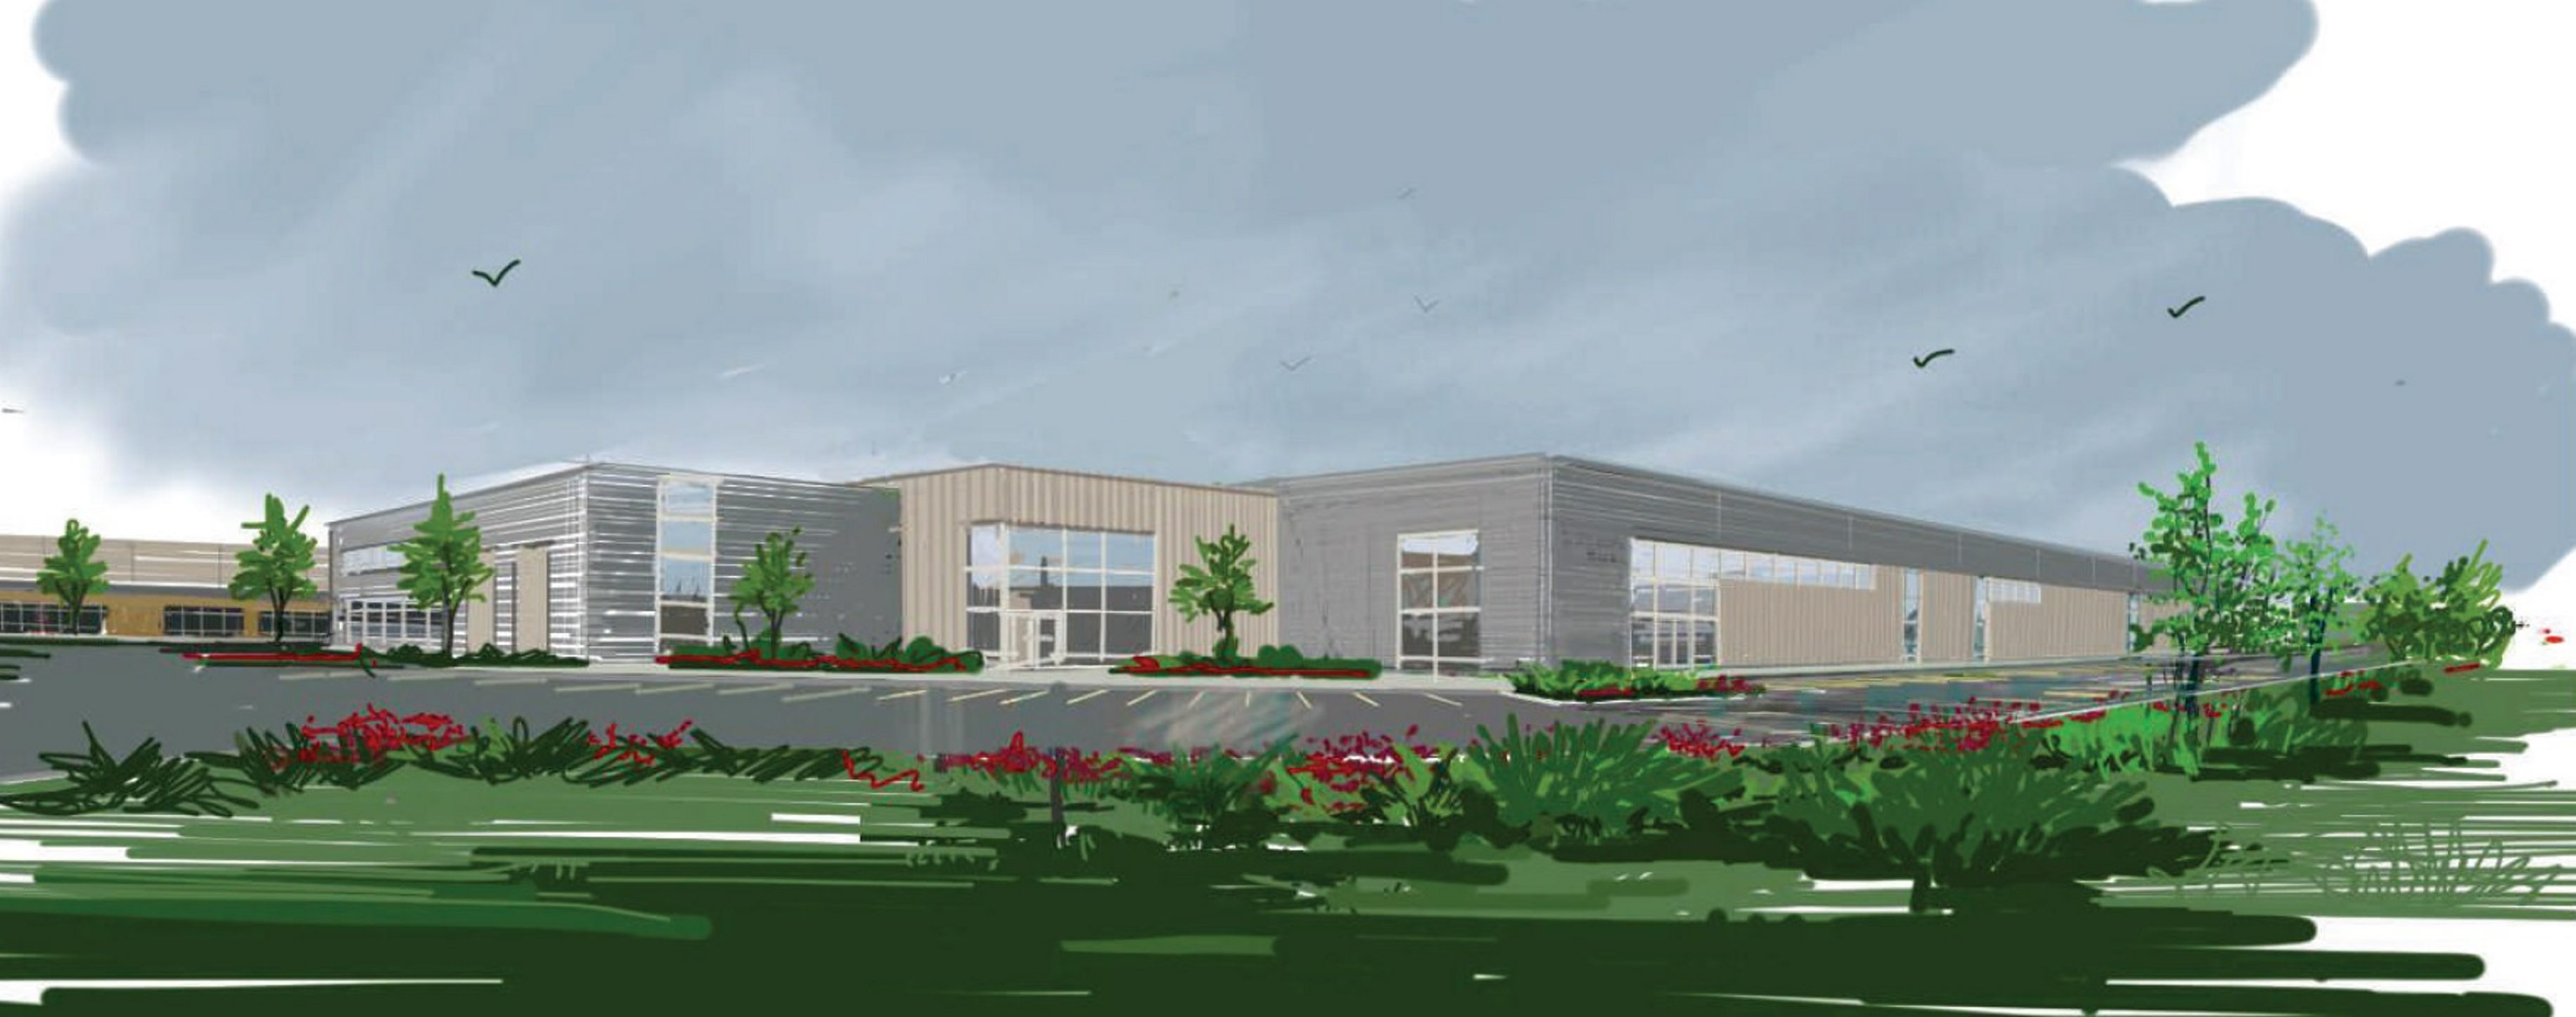 A rendering of the Garden Village Commerce Park proposed for Cheektowaga by Benderson Development.